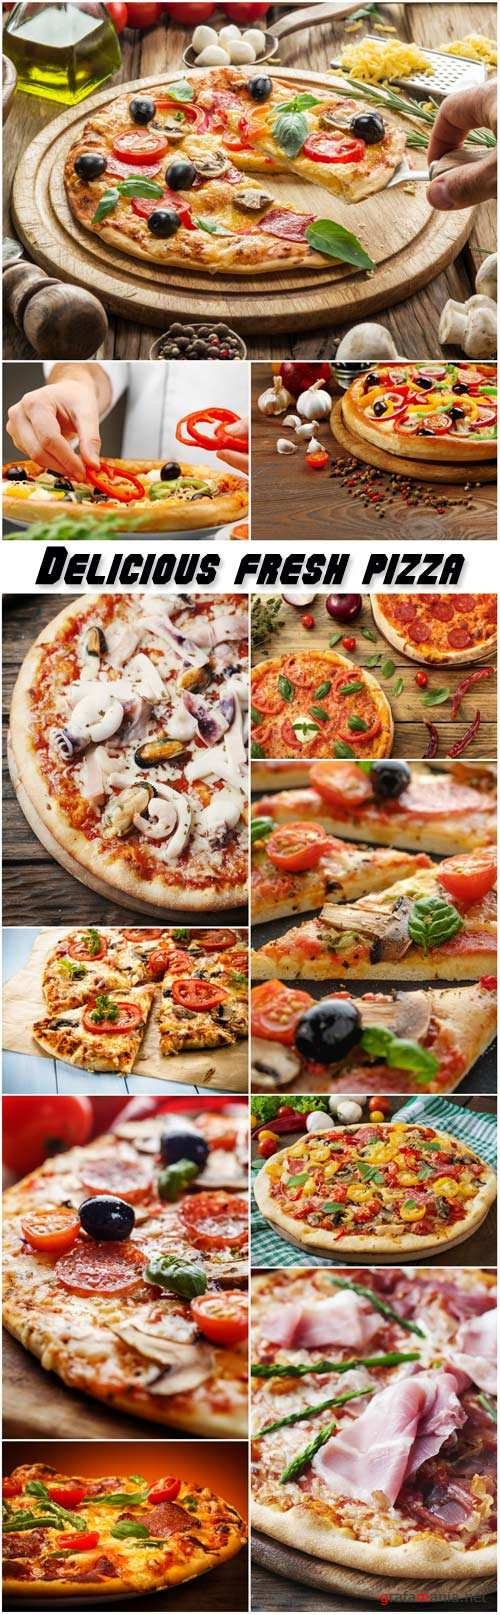 Delicious fresh pizza with mushrooms, pepperoni and seafood